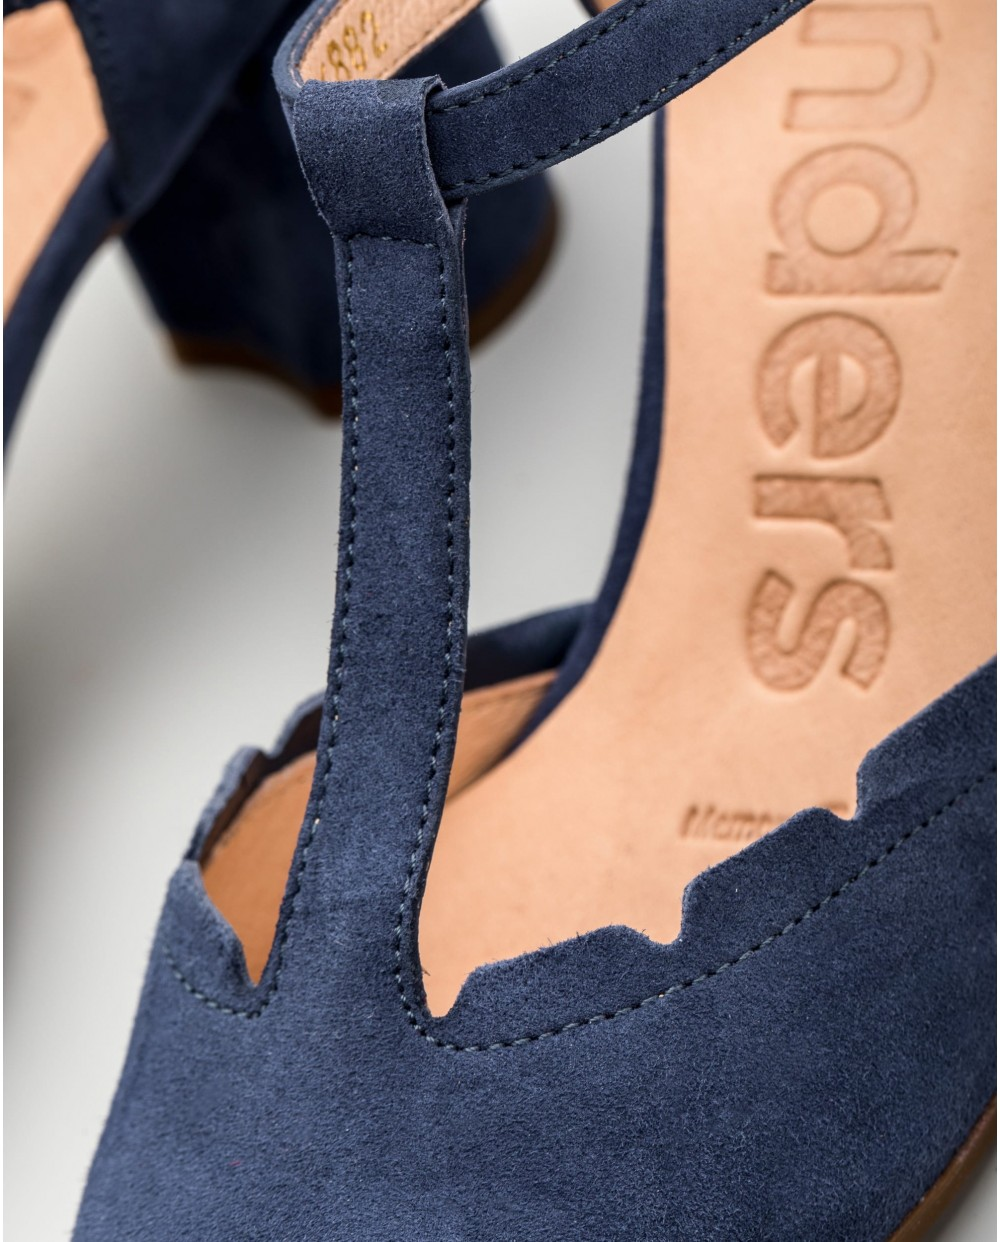 Wonders-Outlet-Sandals with criss-cross straps